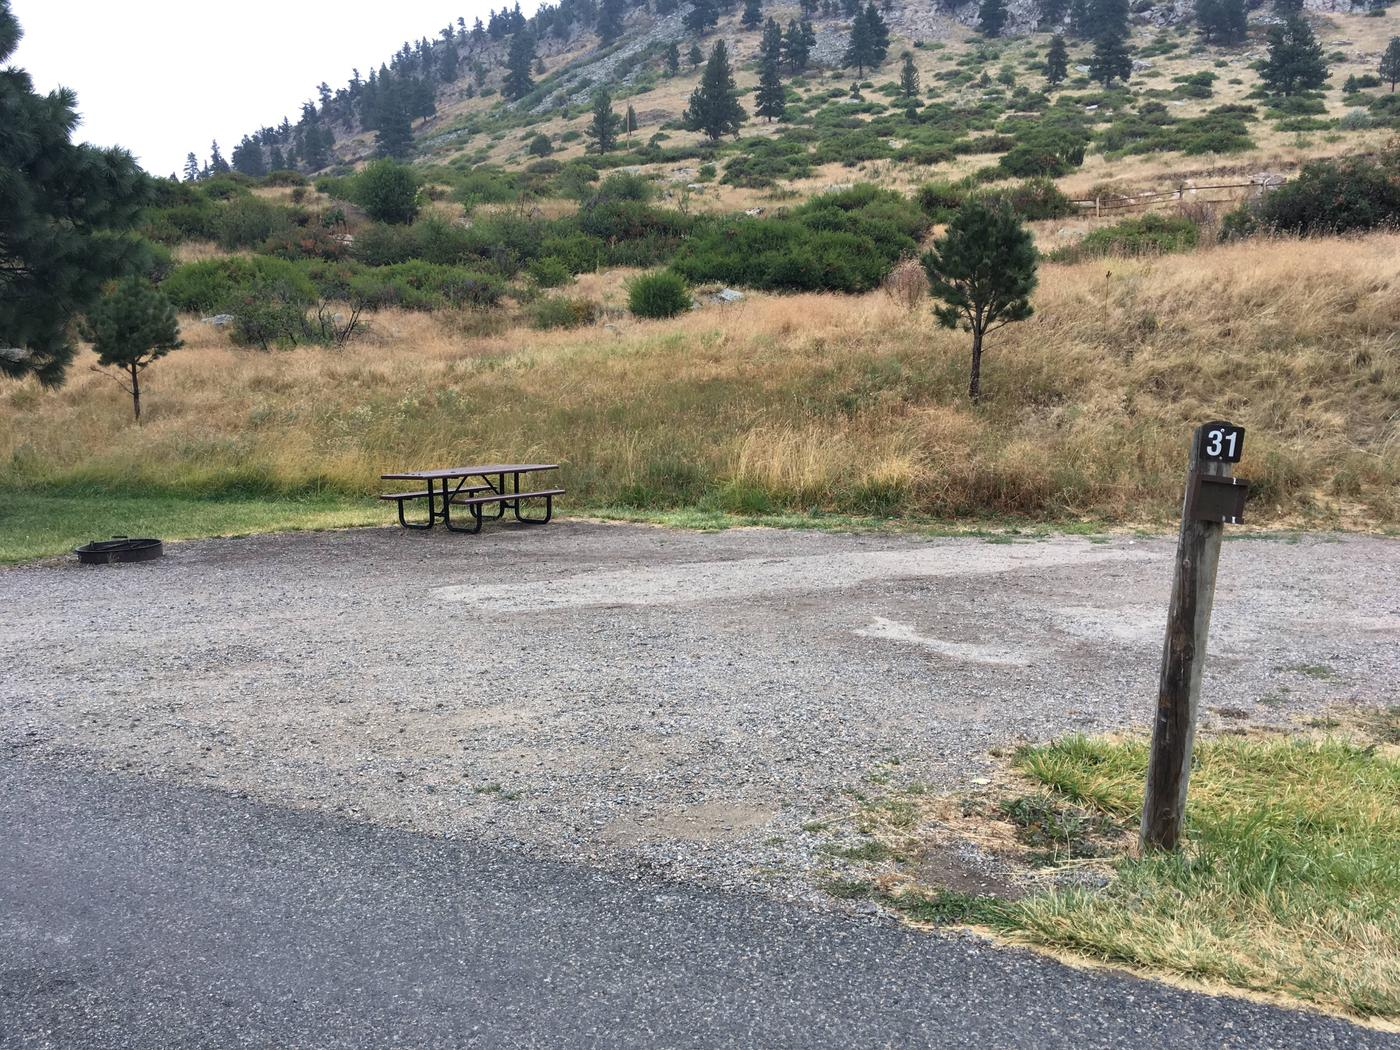 Site 31 BLM Holter Lake Campground. Paved access to campsite. Graveled campsite with picnic table and fire pit. Beartooth Road above campground.Site 31 BLM Holter Lake Campground.